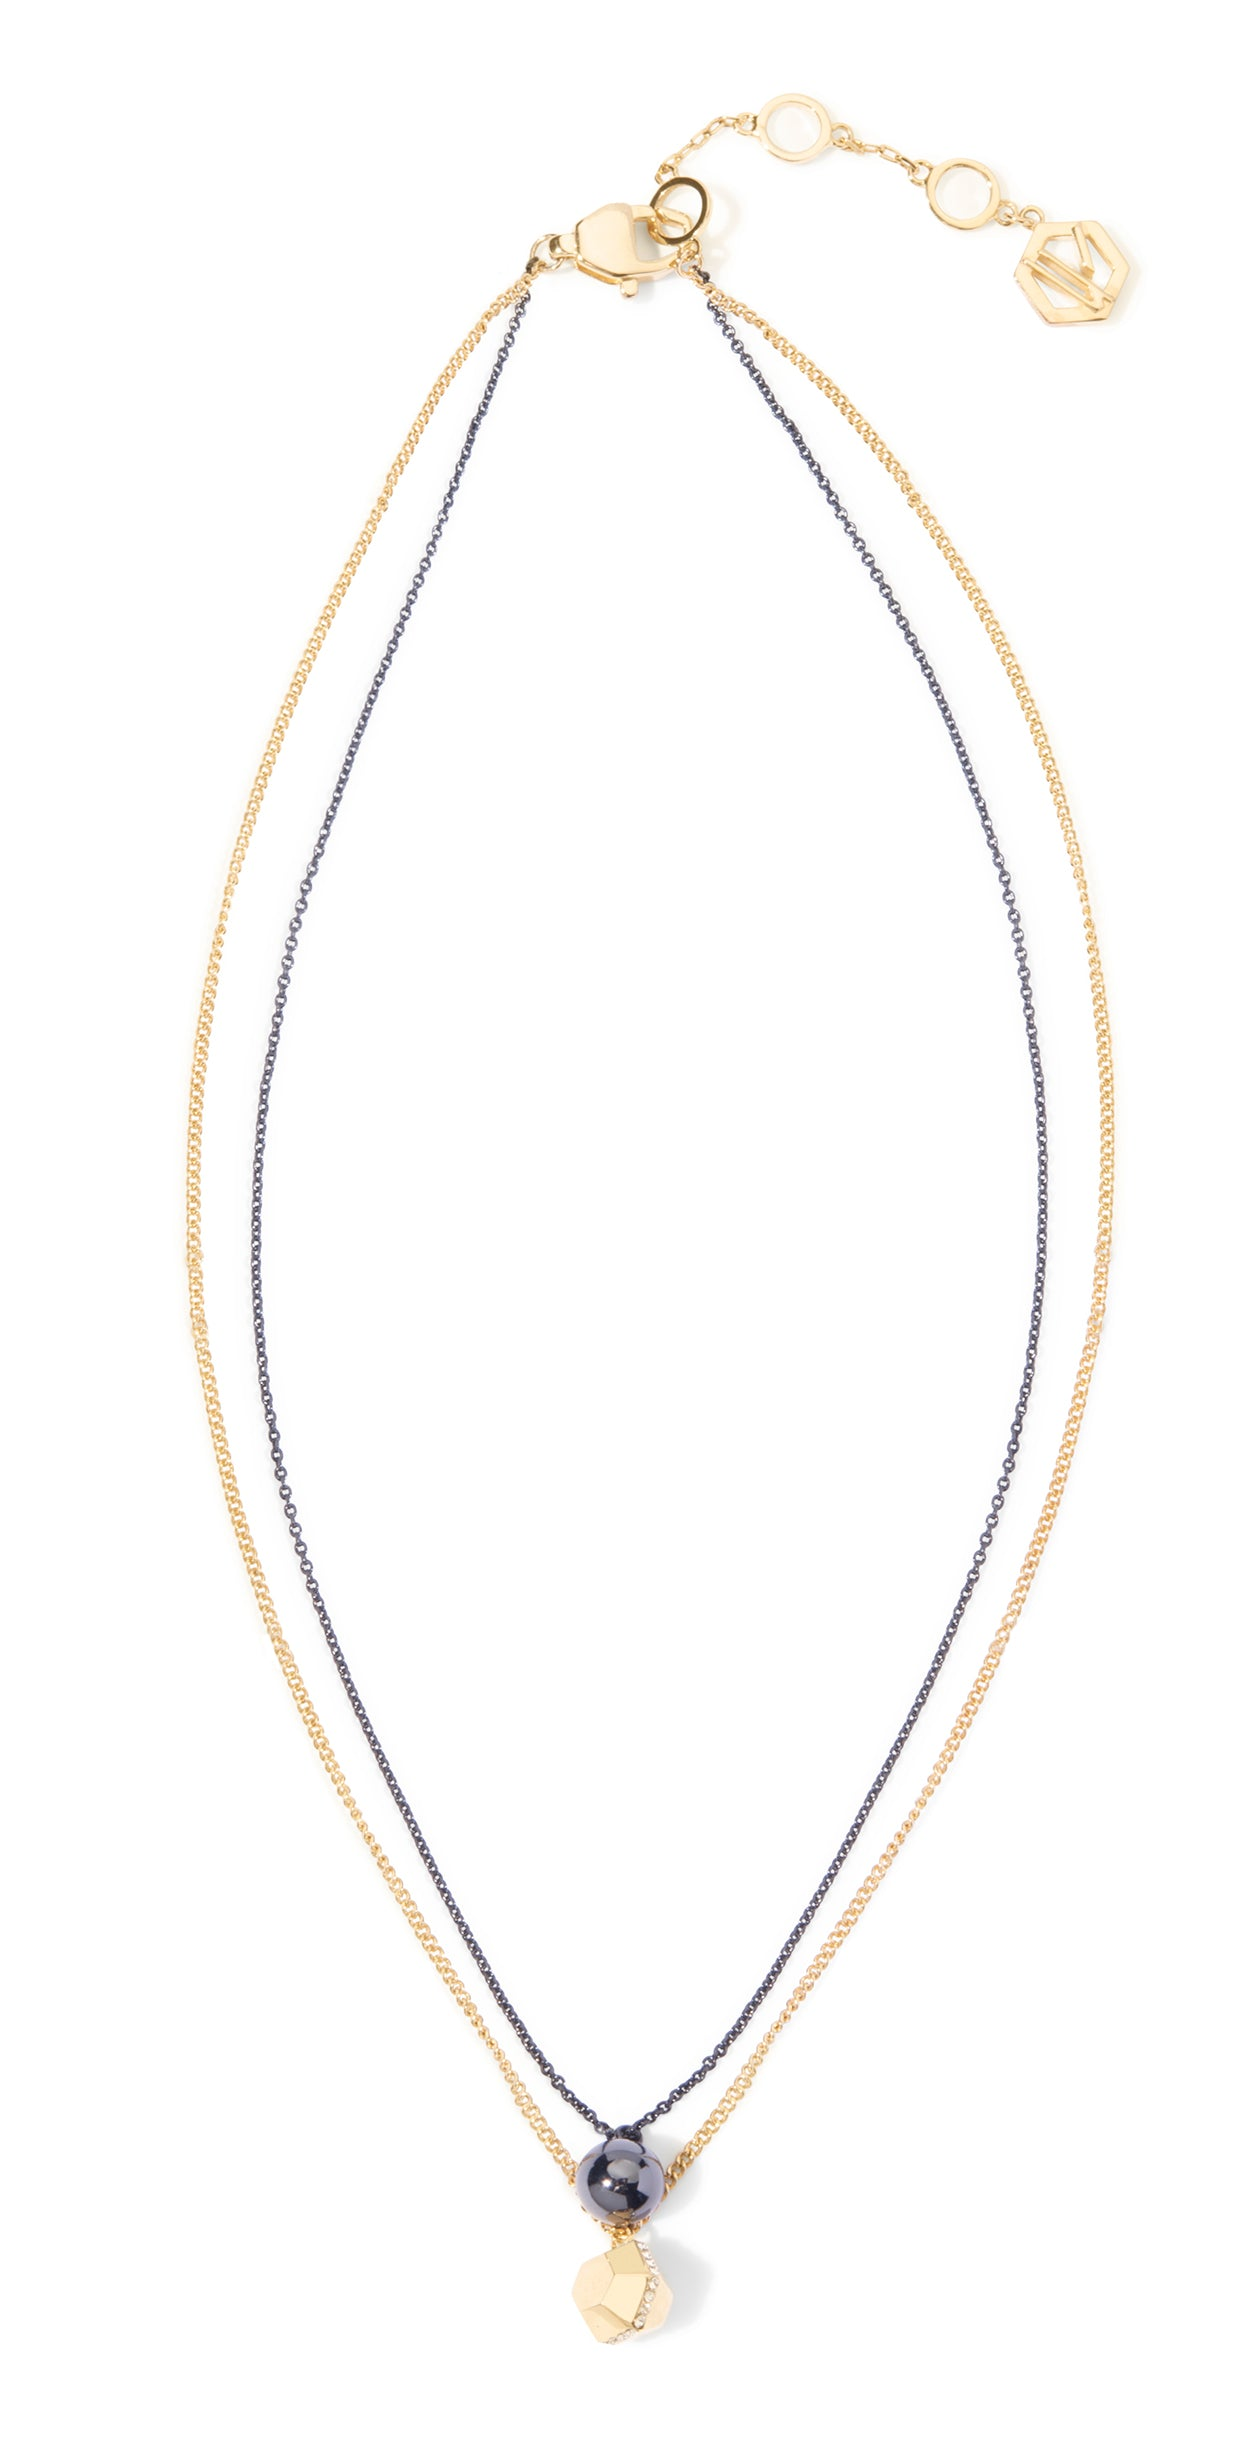 Sixtine Layered Necklace - 2 Tone Gold and Hematite